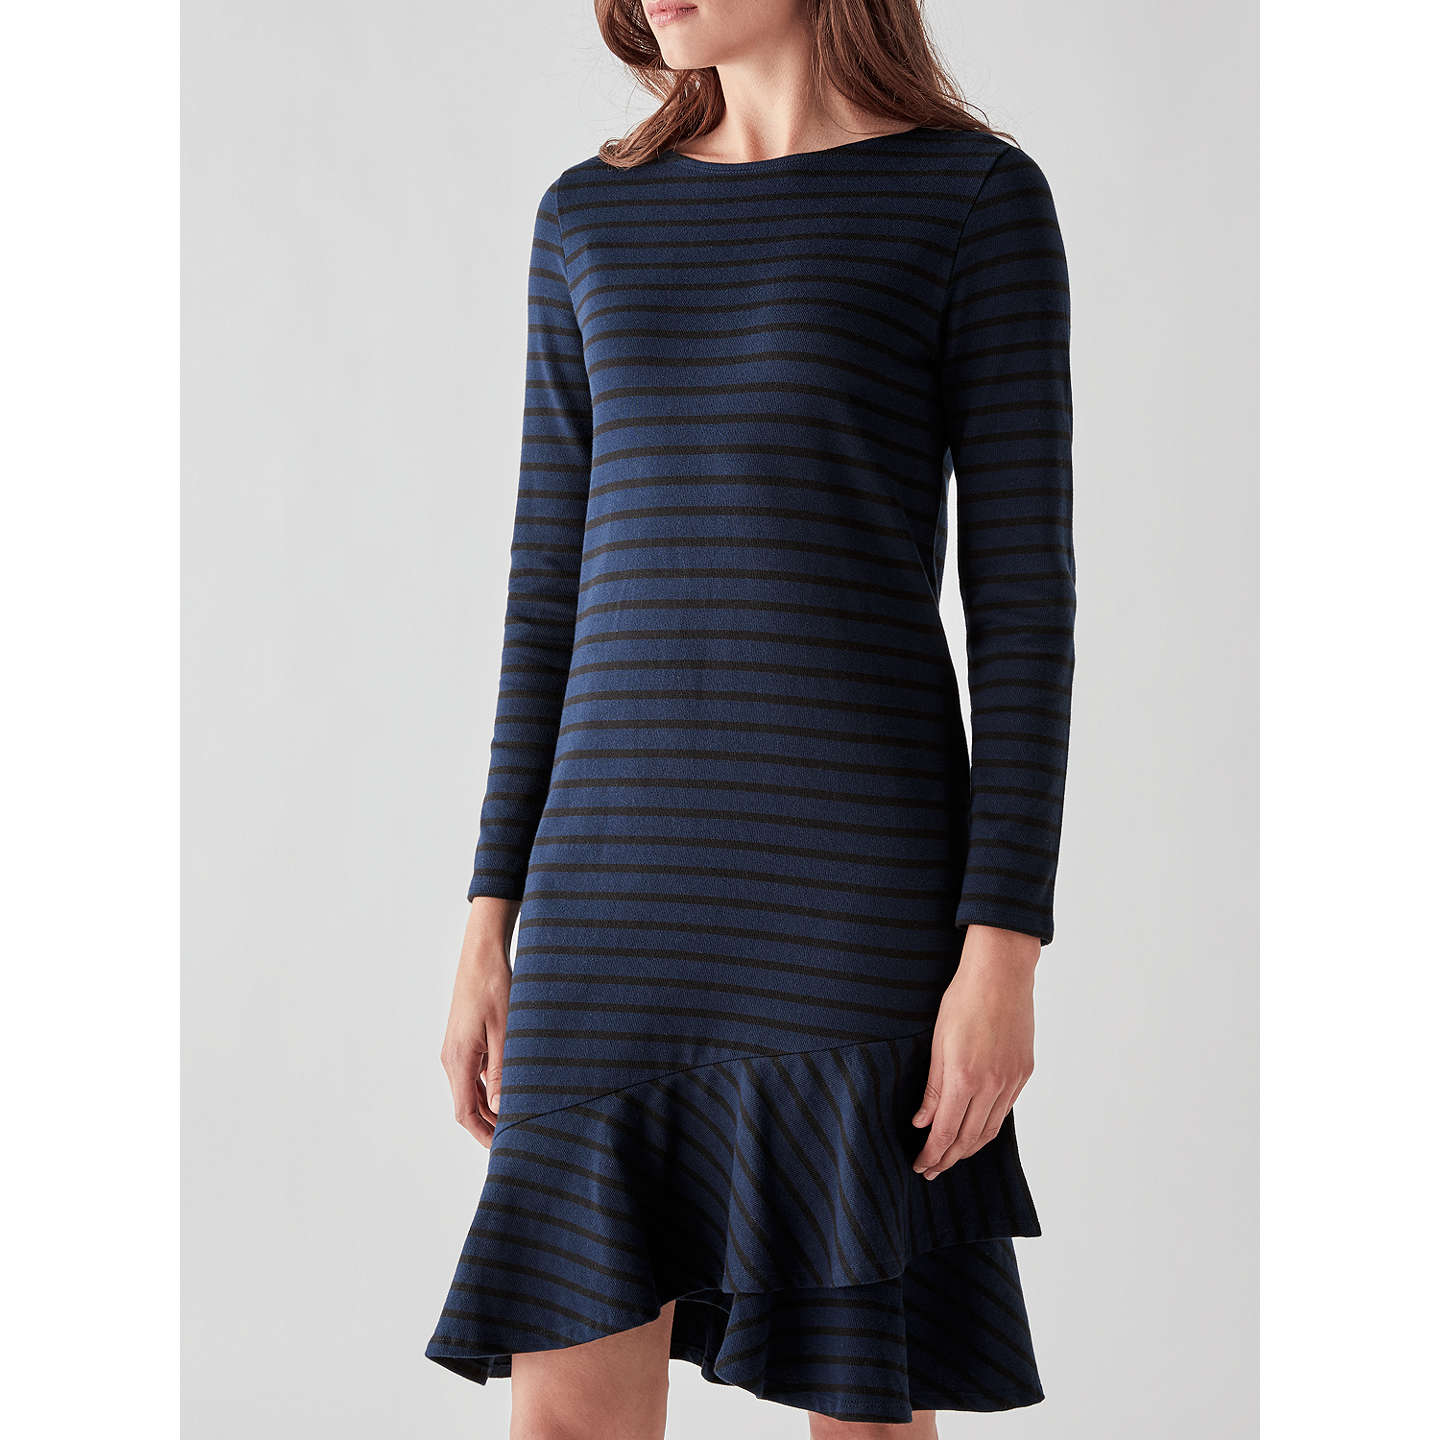 BuyPeople Tree Kaya Frill Dress, Navy/Black, 8 Online at johnlewis.com